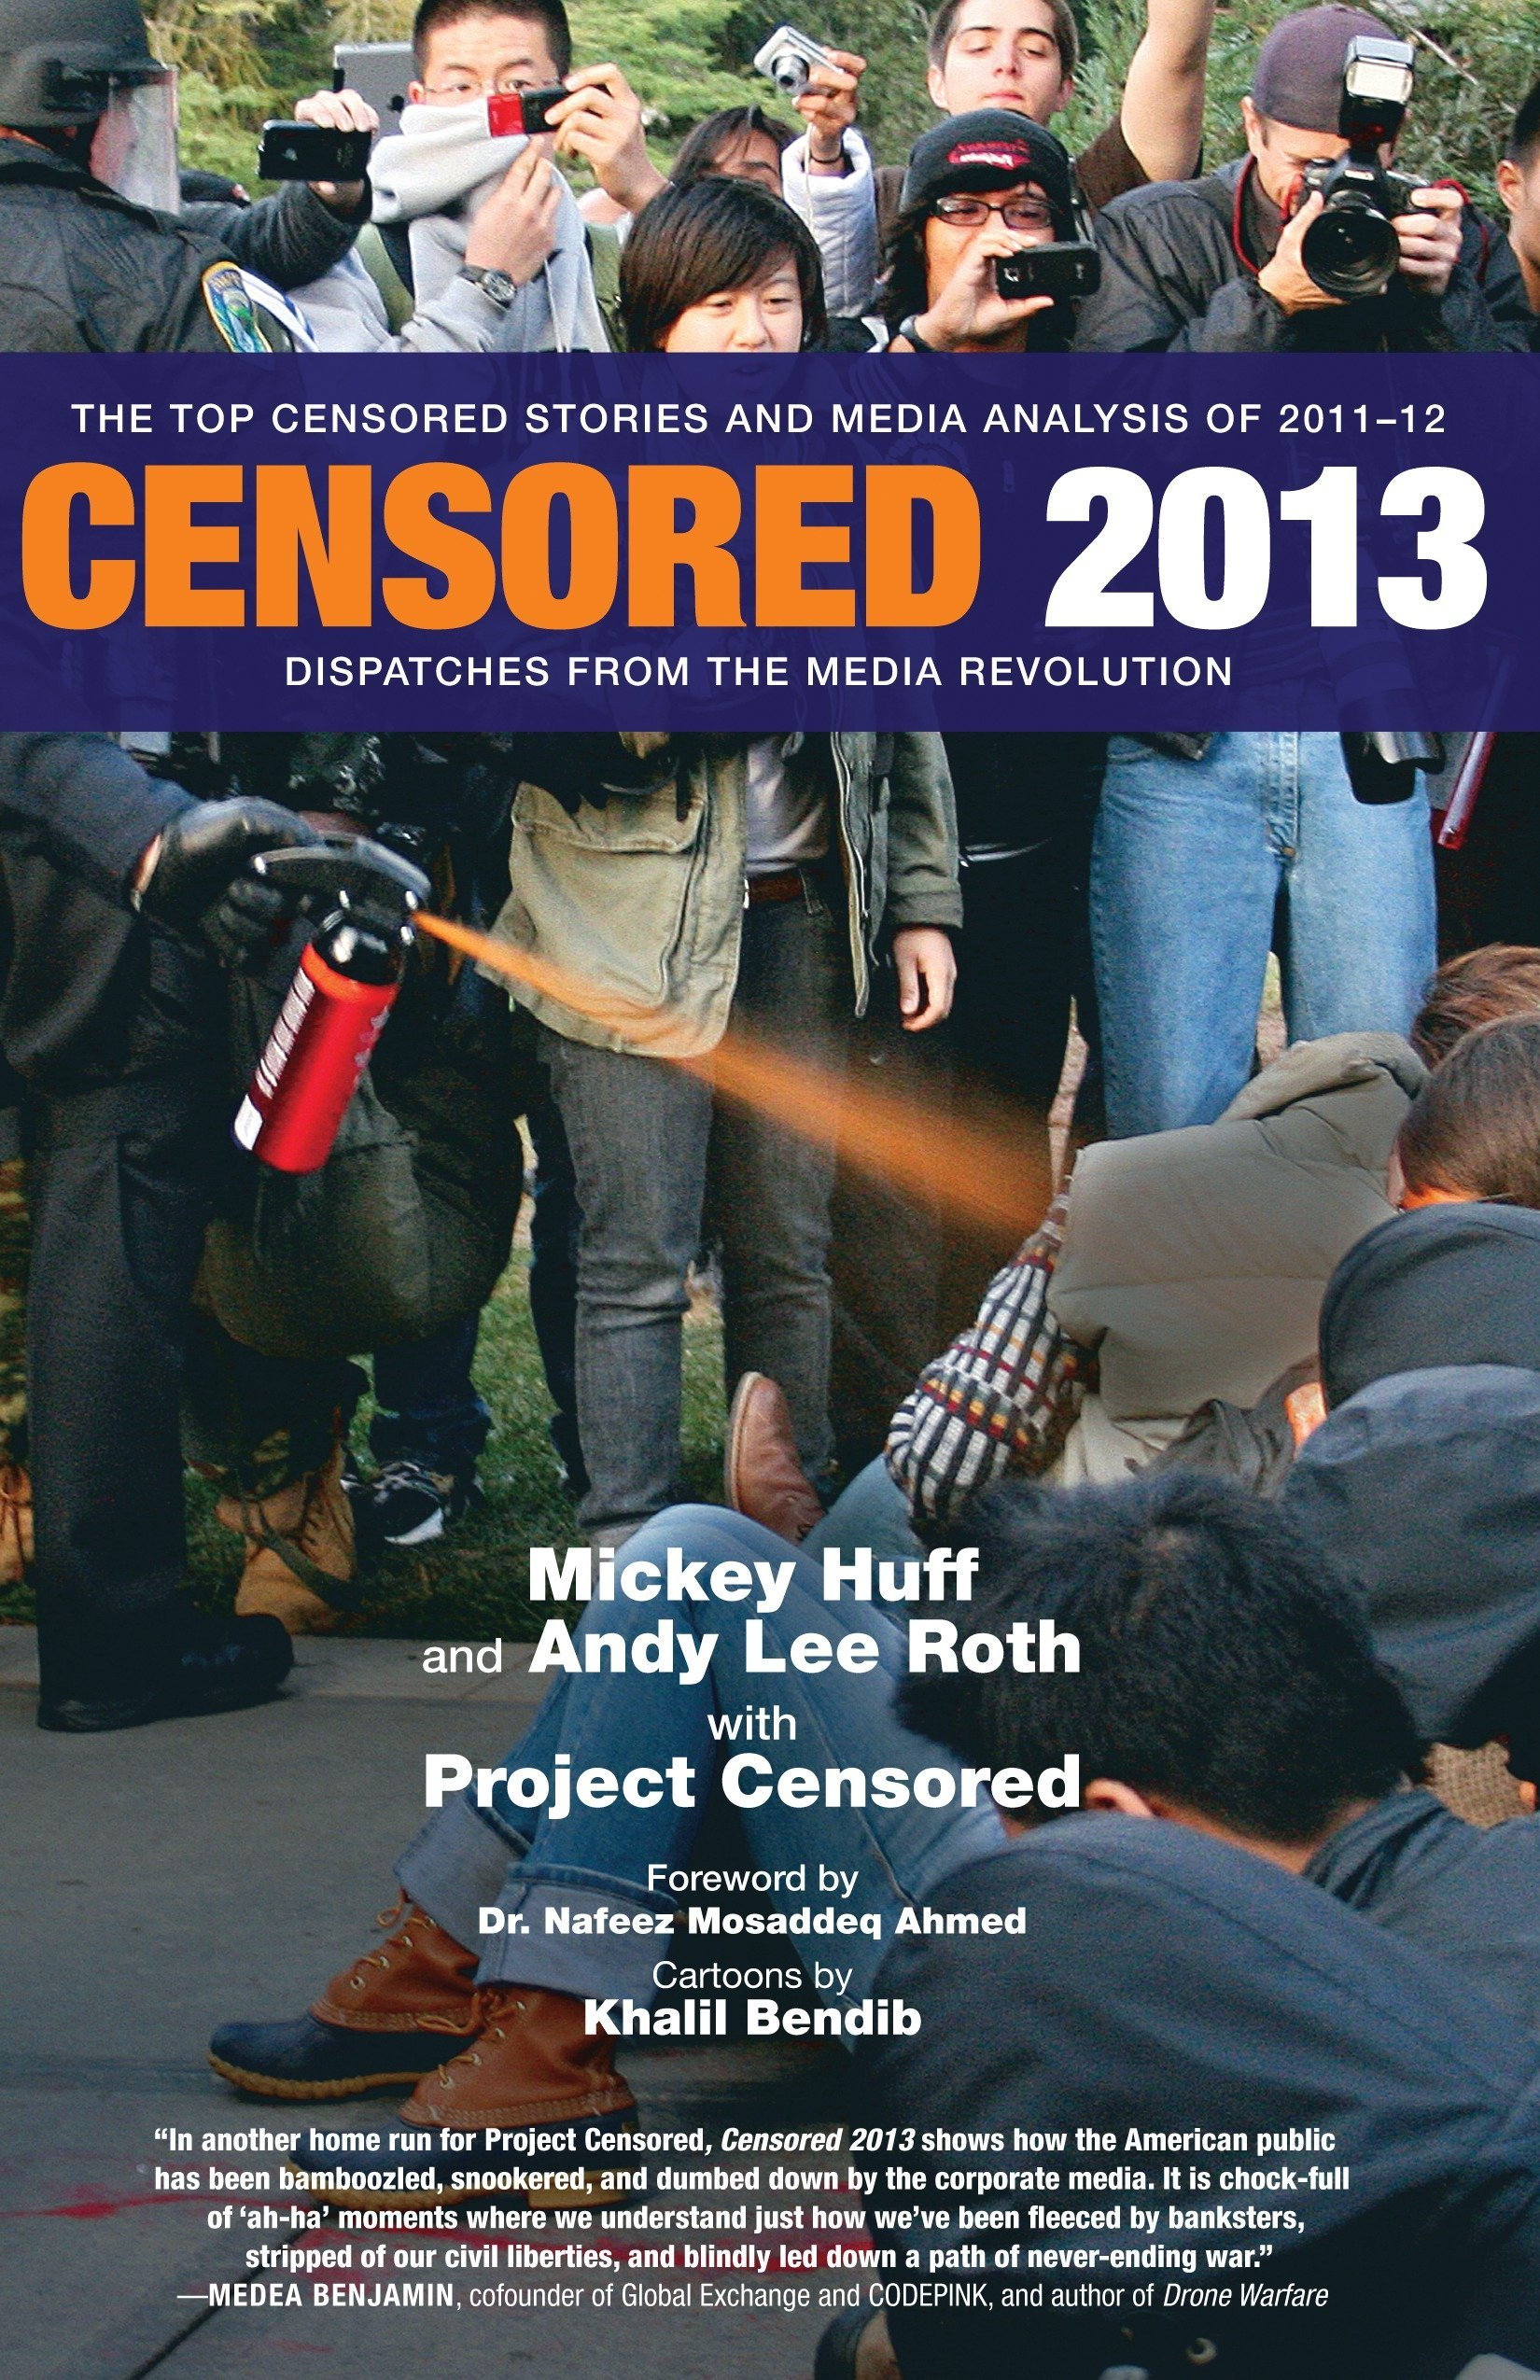 Censored 2013: The Top Censored Stories and Media Analysis ...